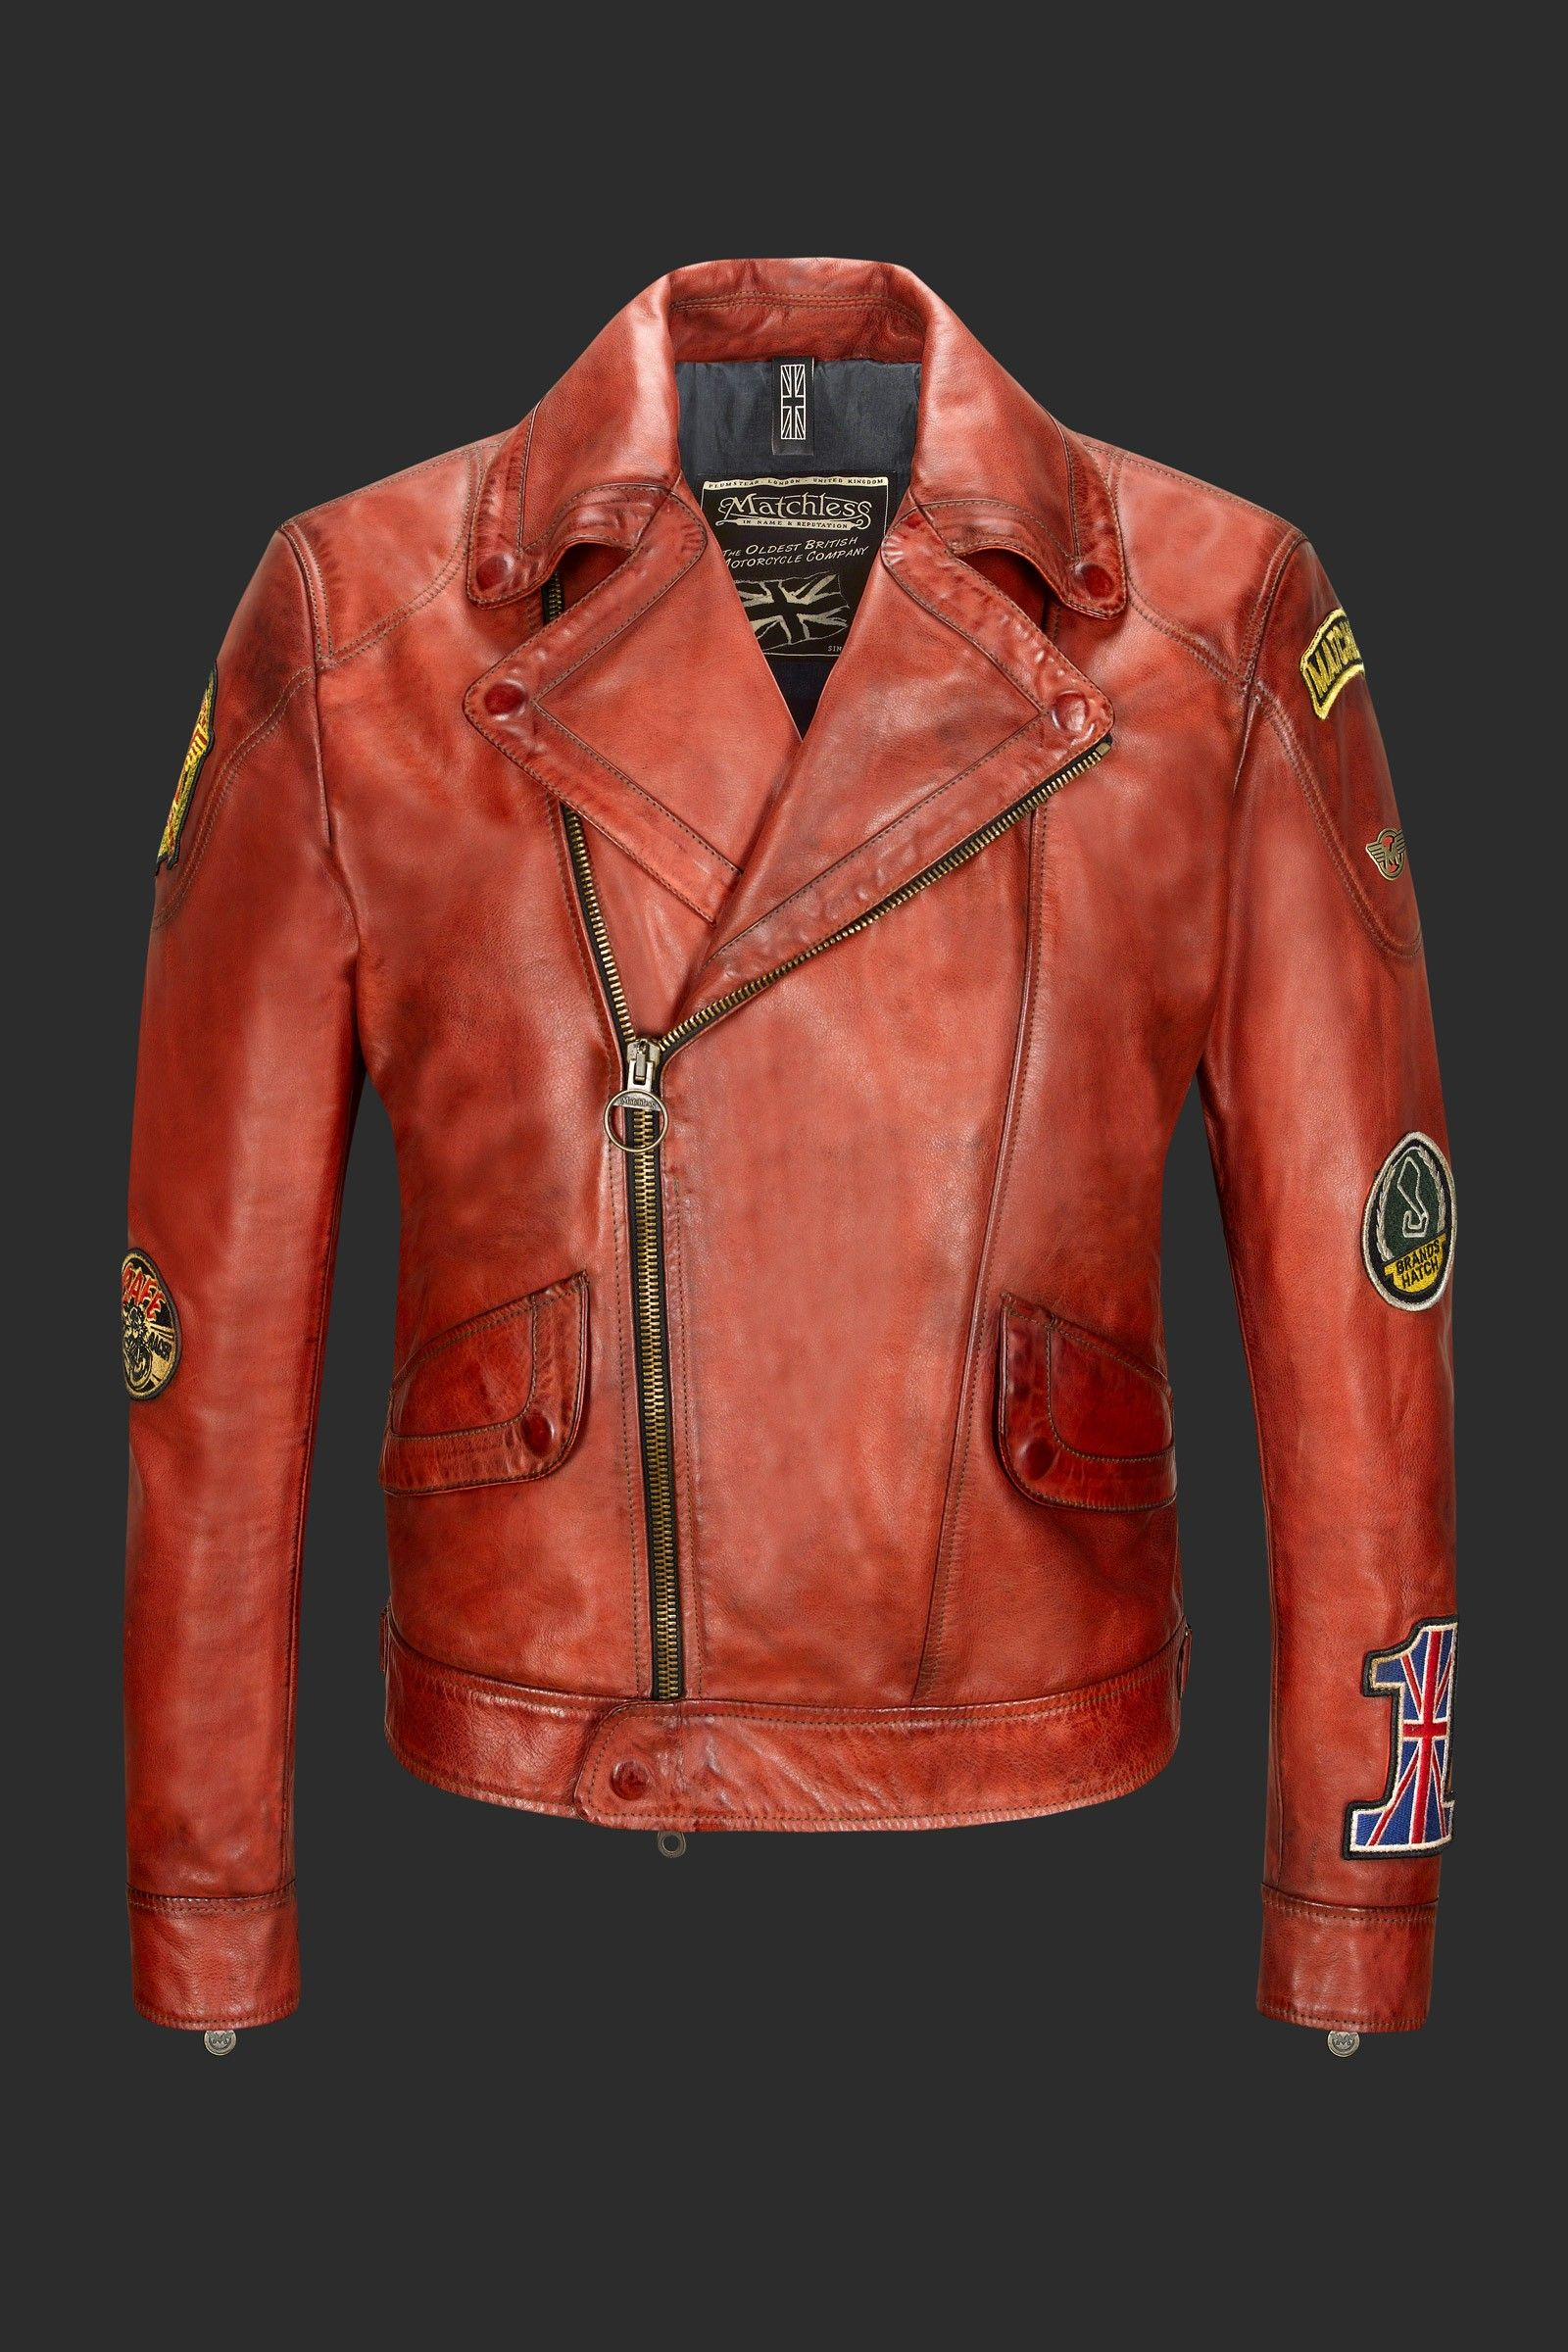 MICK BLOUSON - leather - jackets - man | Matchless London. Big love for this one . I am sold right away